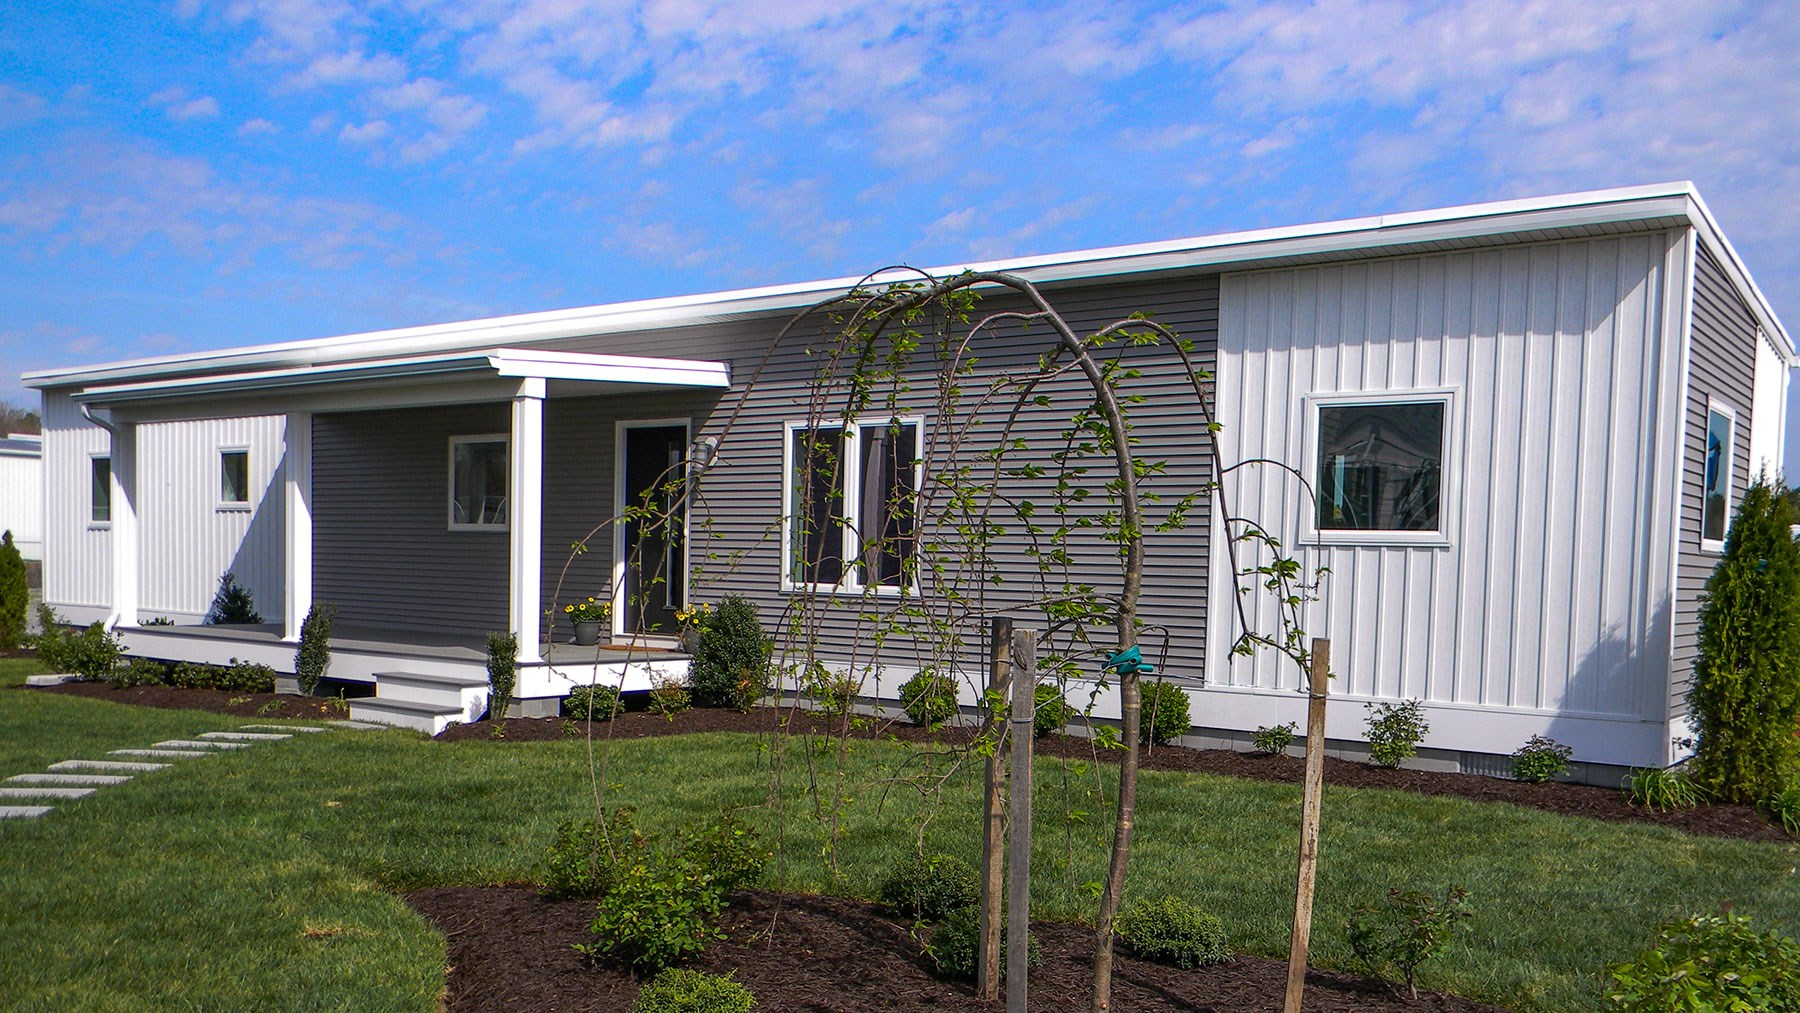 a photo from High-efficiency modular homes are an affordable housing solution